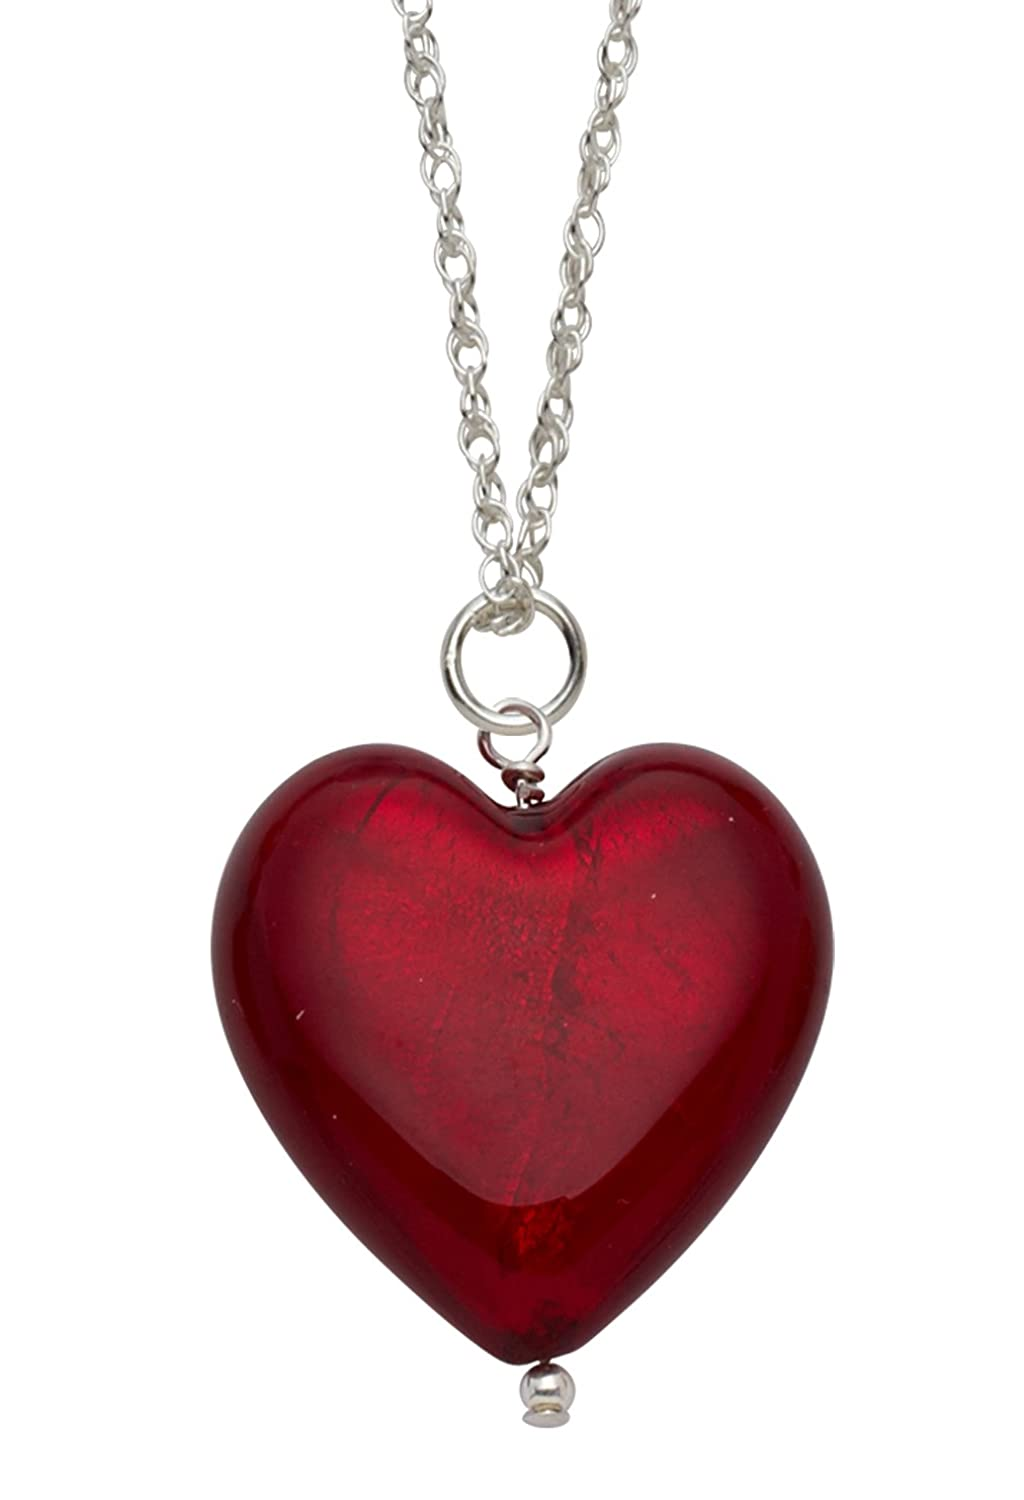 Genuine murano glass flat red heart pendant on sterling silver genuine murano glass flat red heart pendant on sterling silver chain of 25cm amazon jewellery mozeypictures Choice Image